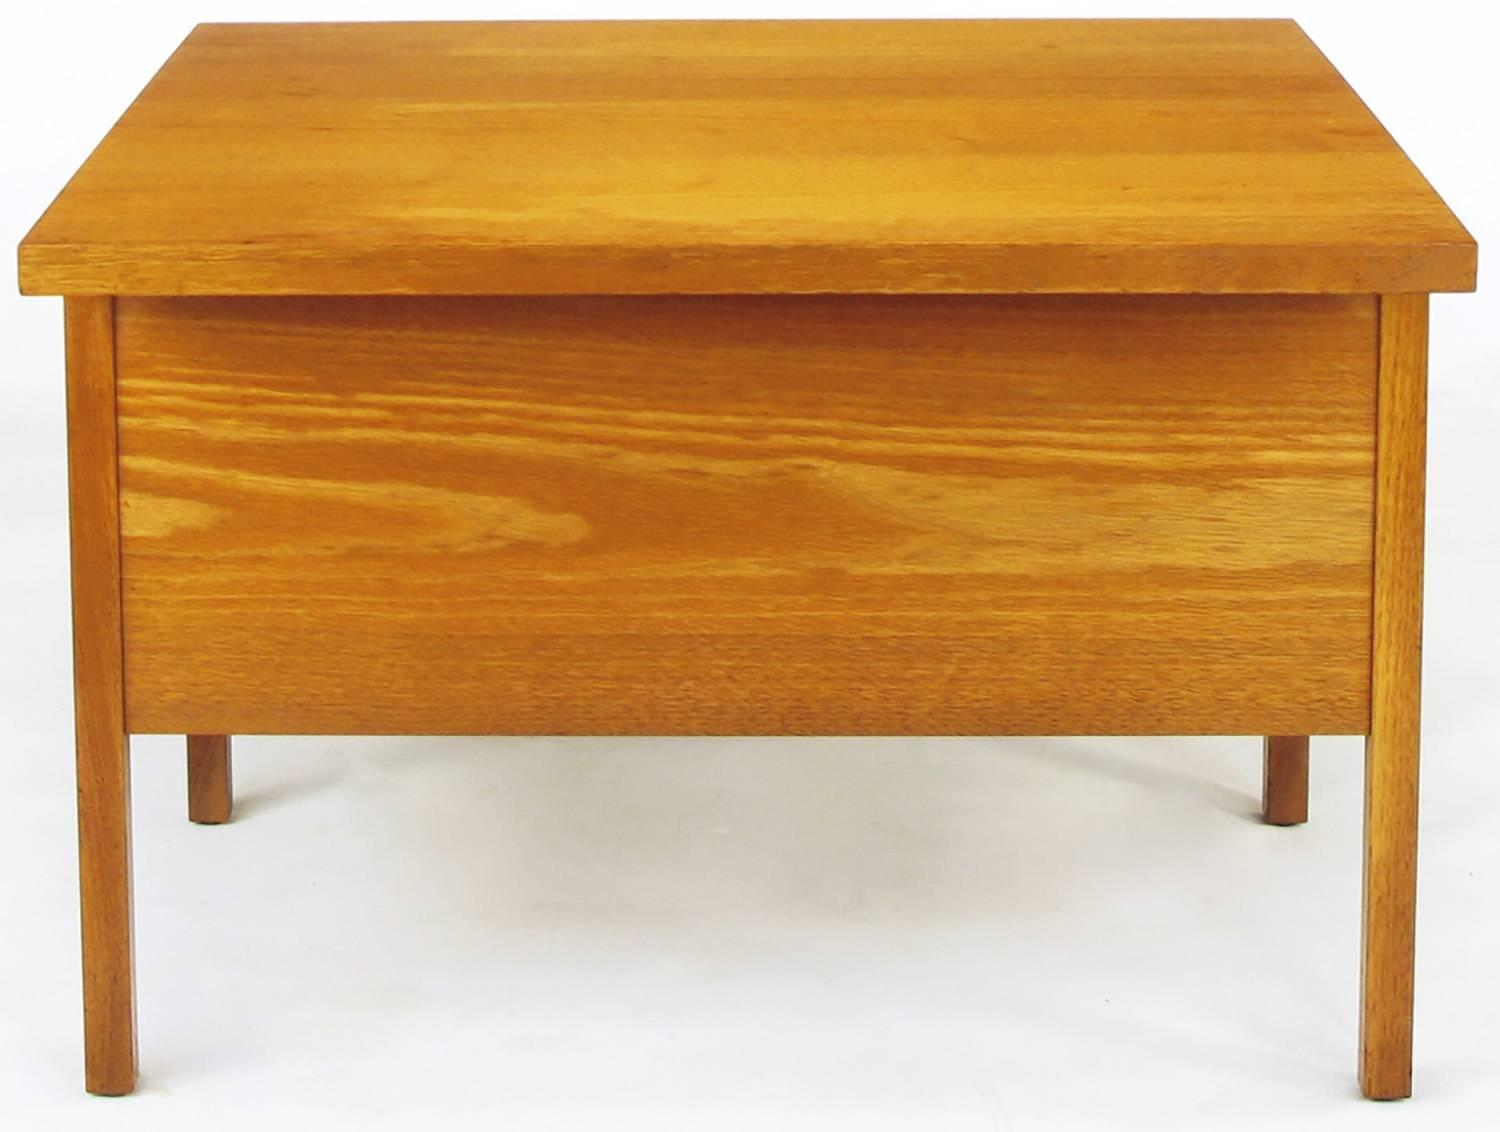 John Keal Walnut Coffee Table With Three Folding Side Tables For Sale At 1stdibs